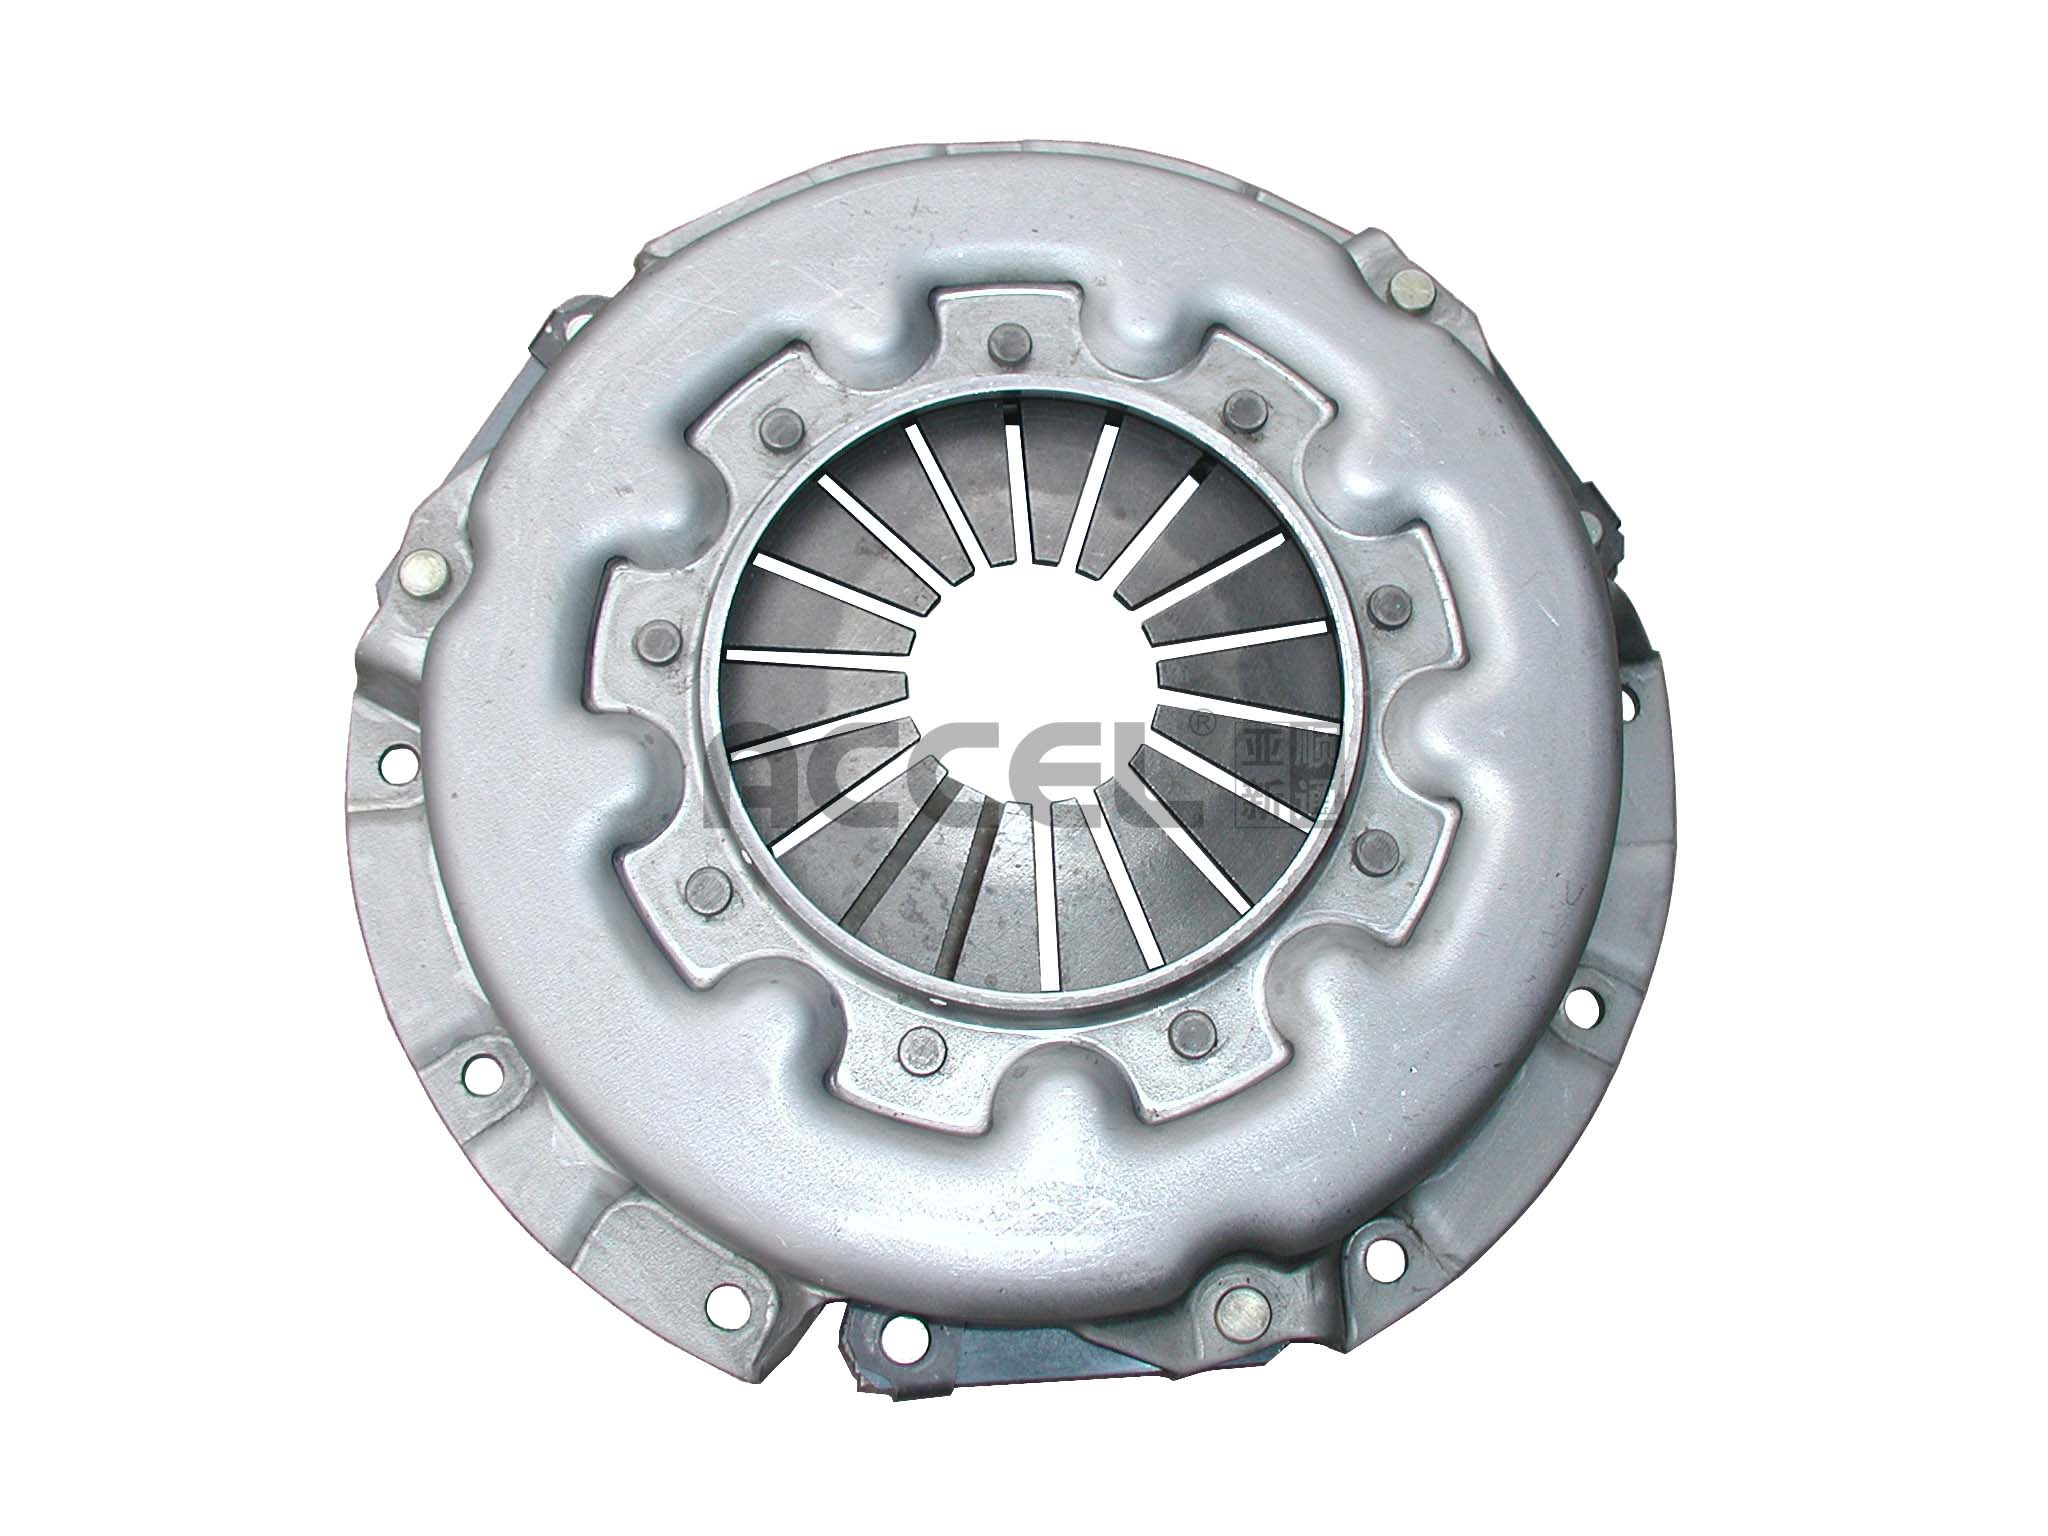 Clutch Cover/OE:MD802092/215*140*247/CMB-008/MITSUBISHI/LY205/MD802092/MD749758/MBC553/MBC510/MD749758/MBC553